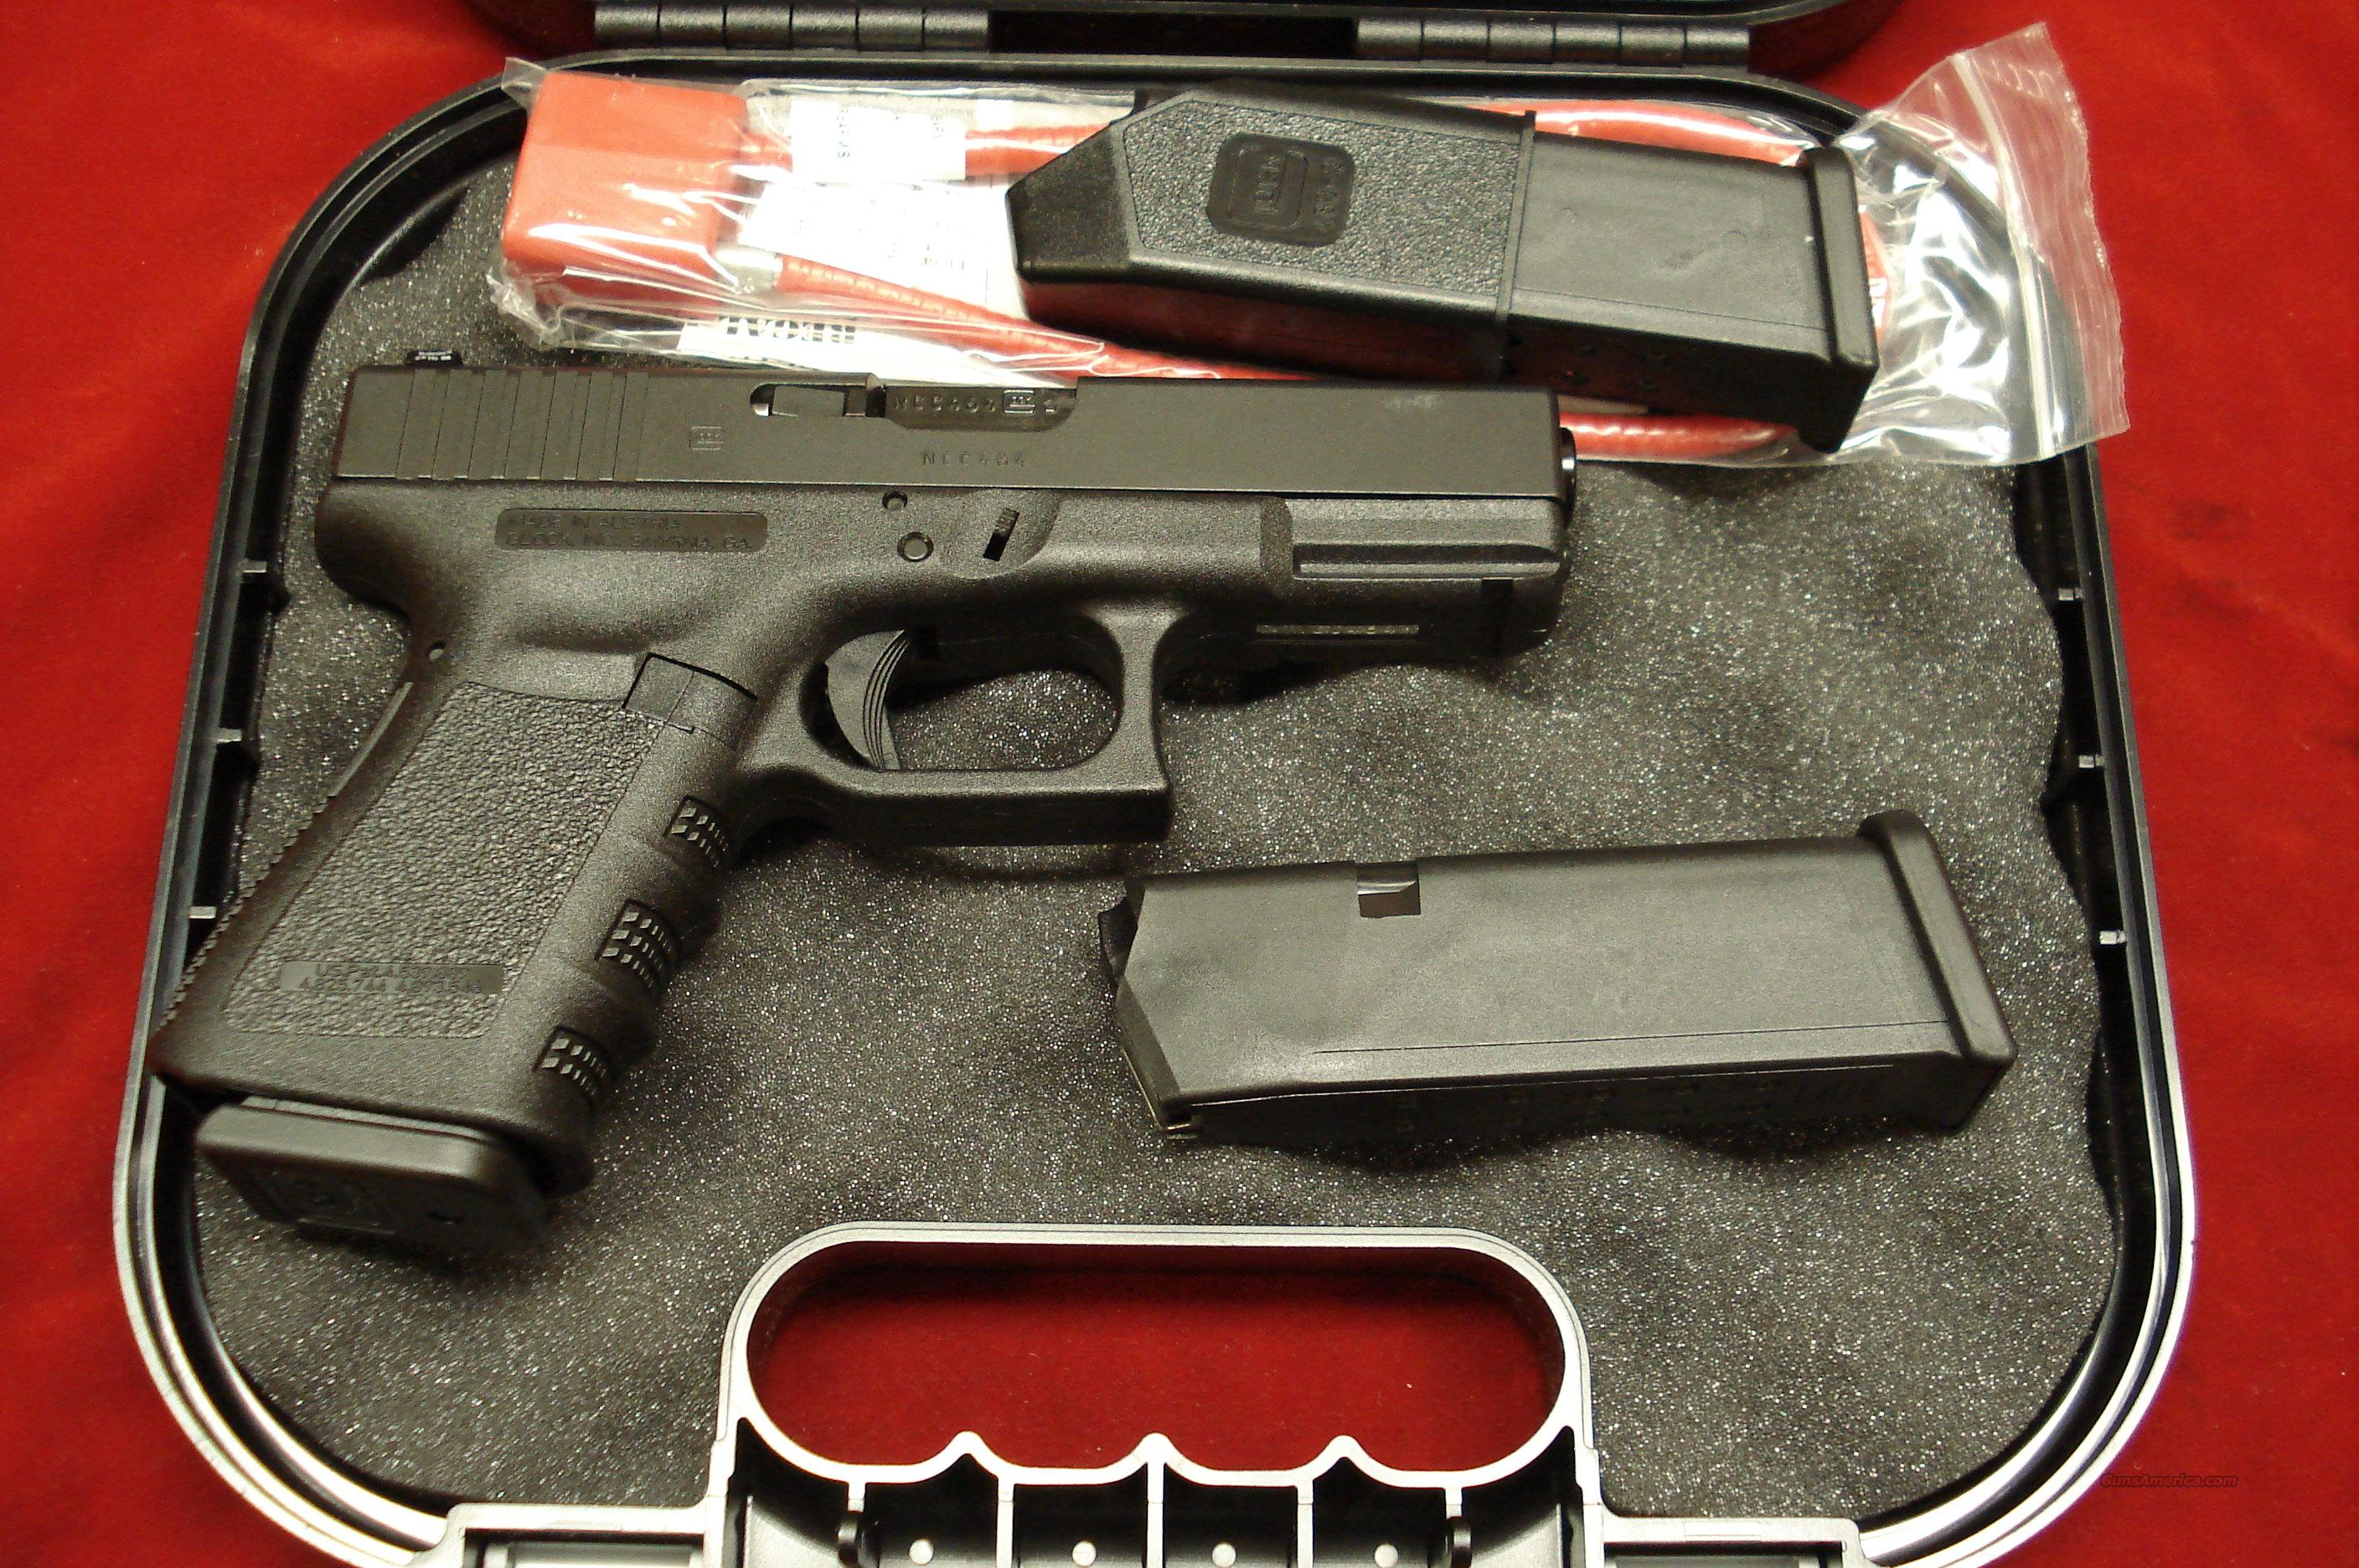 GLOCK MODEL 23 40CAL. W/ FACTORY TRIJICON NIGHT SIGHTS AND 3 HIGH CAP MAGAZINES NEW  Guns > Pistols > Glock Pistols > 23